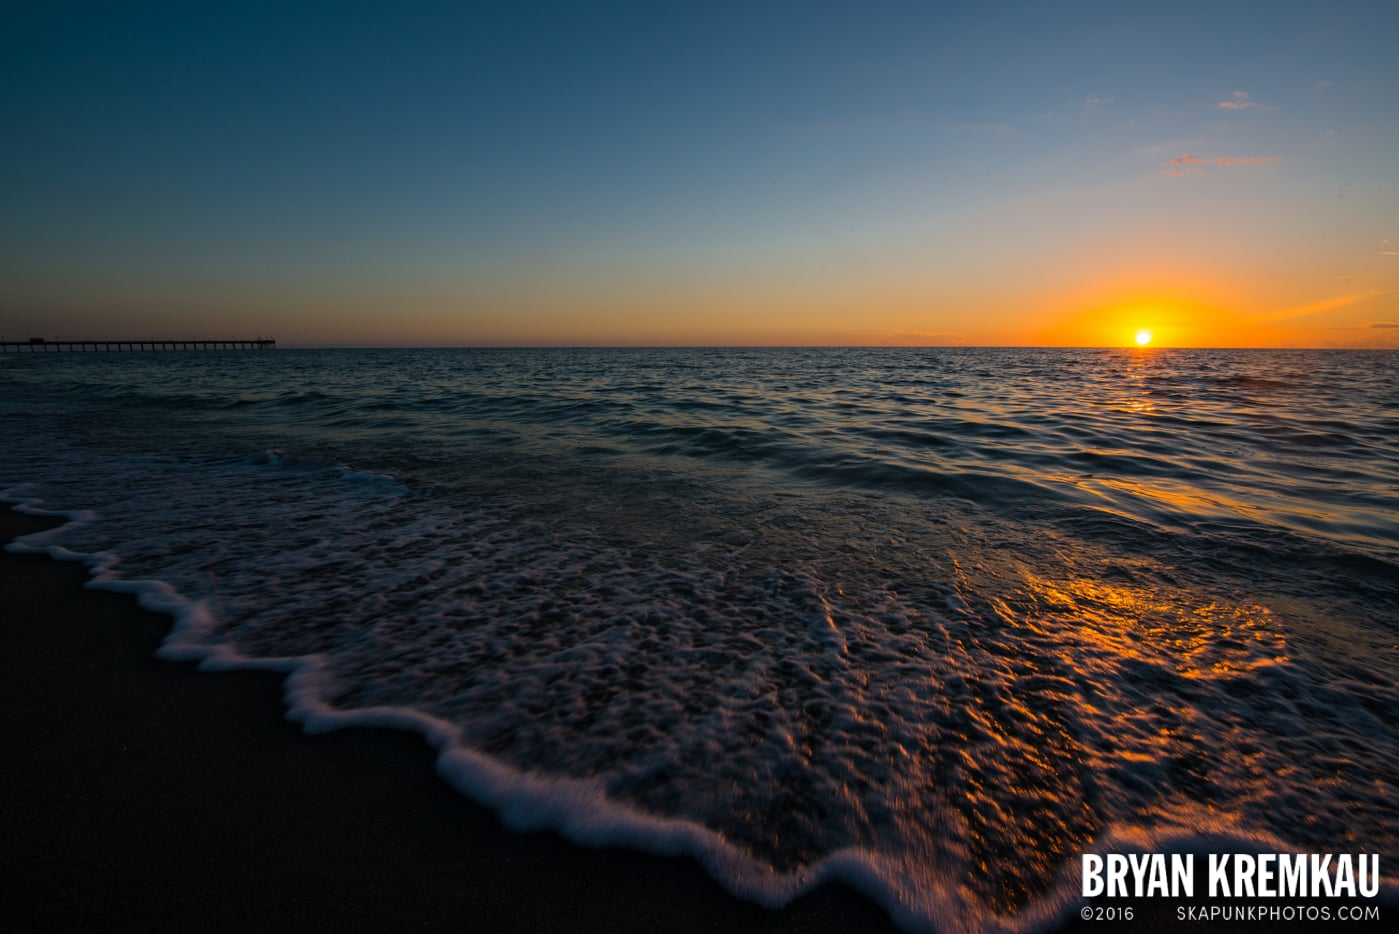 Sunsets, Astrophotography & Birds @ Venice, Florida - 10.25.14 - 11.5.14 (117)